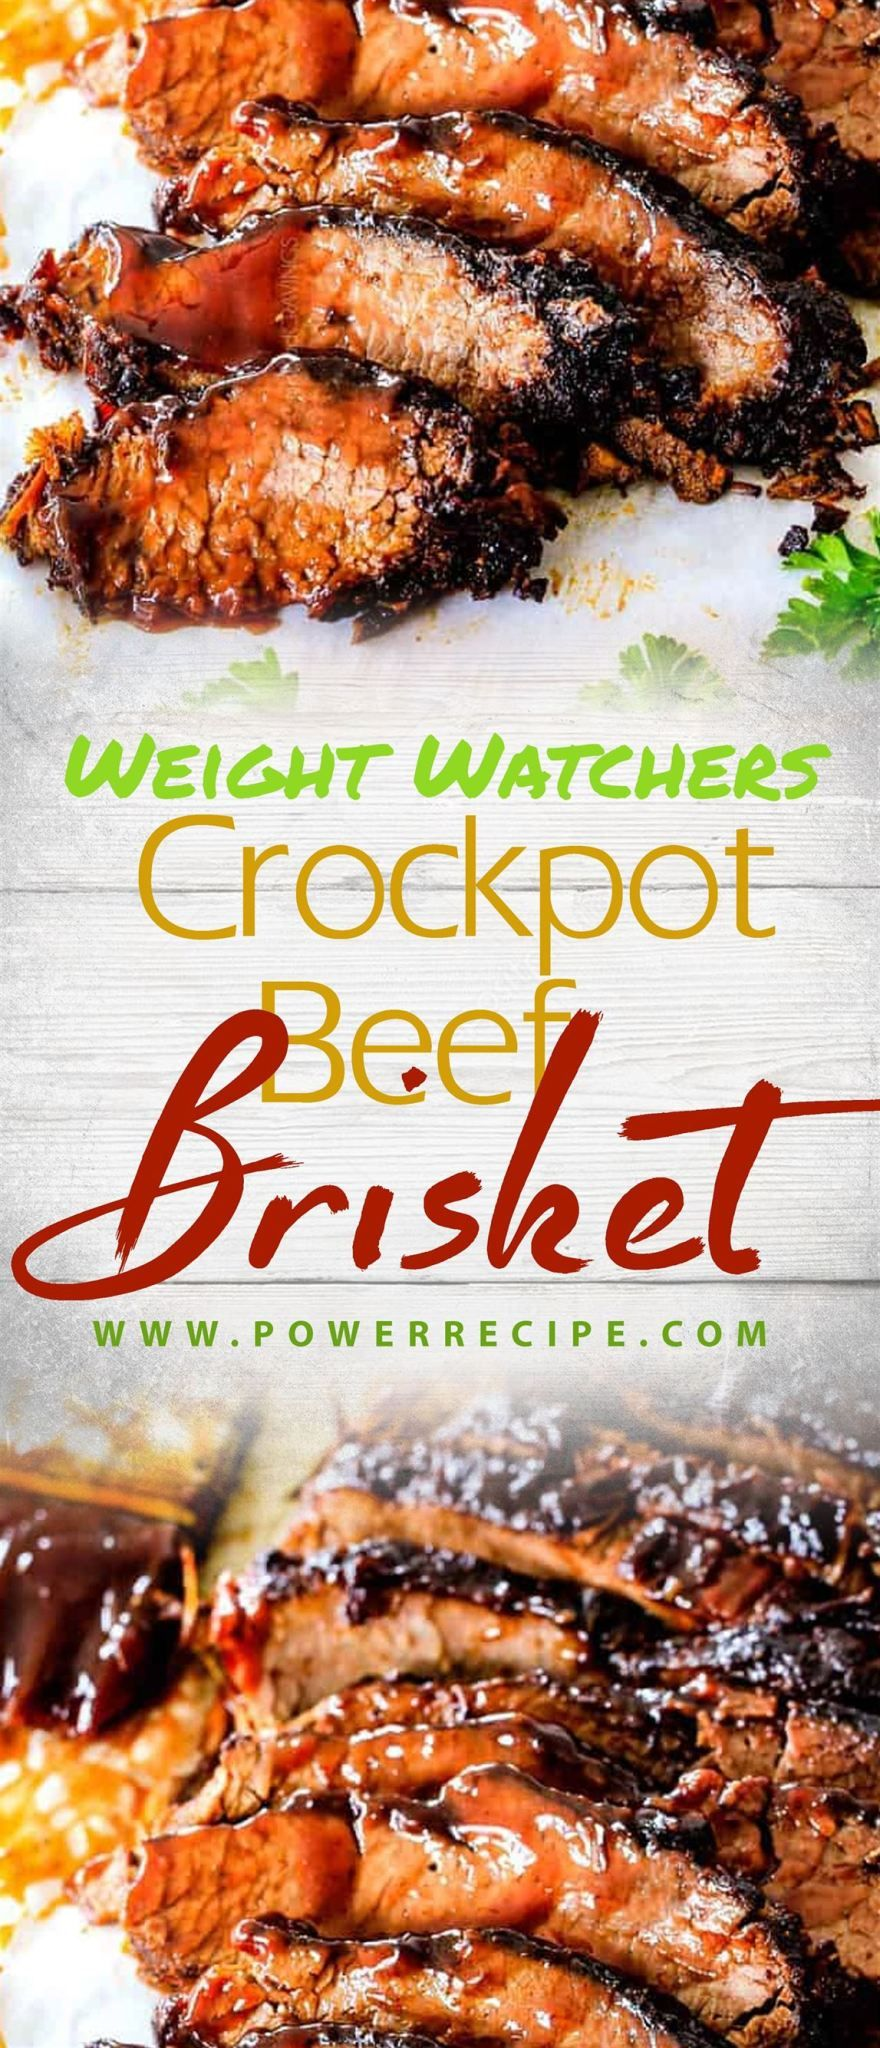 Crockpot Beef Brisket All About Your Power Recipes Crockpot